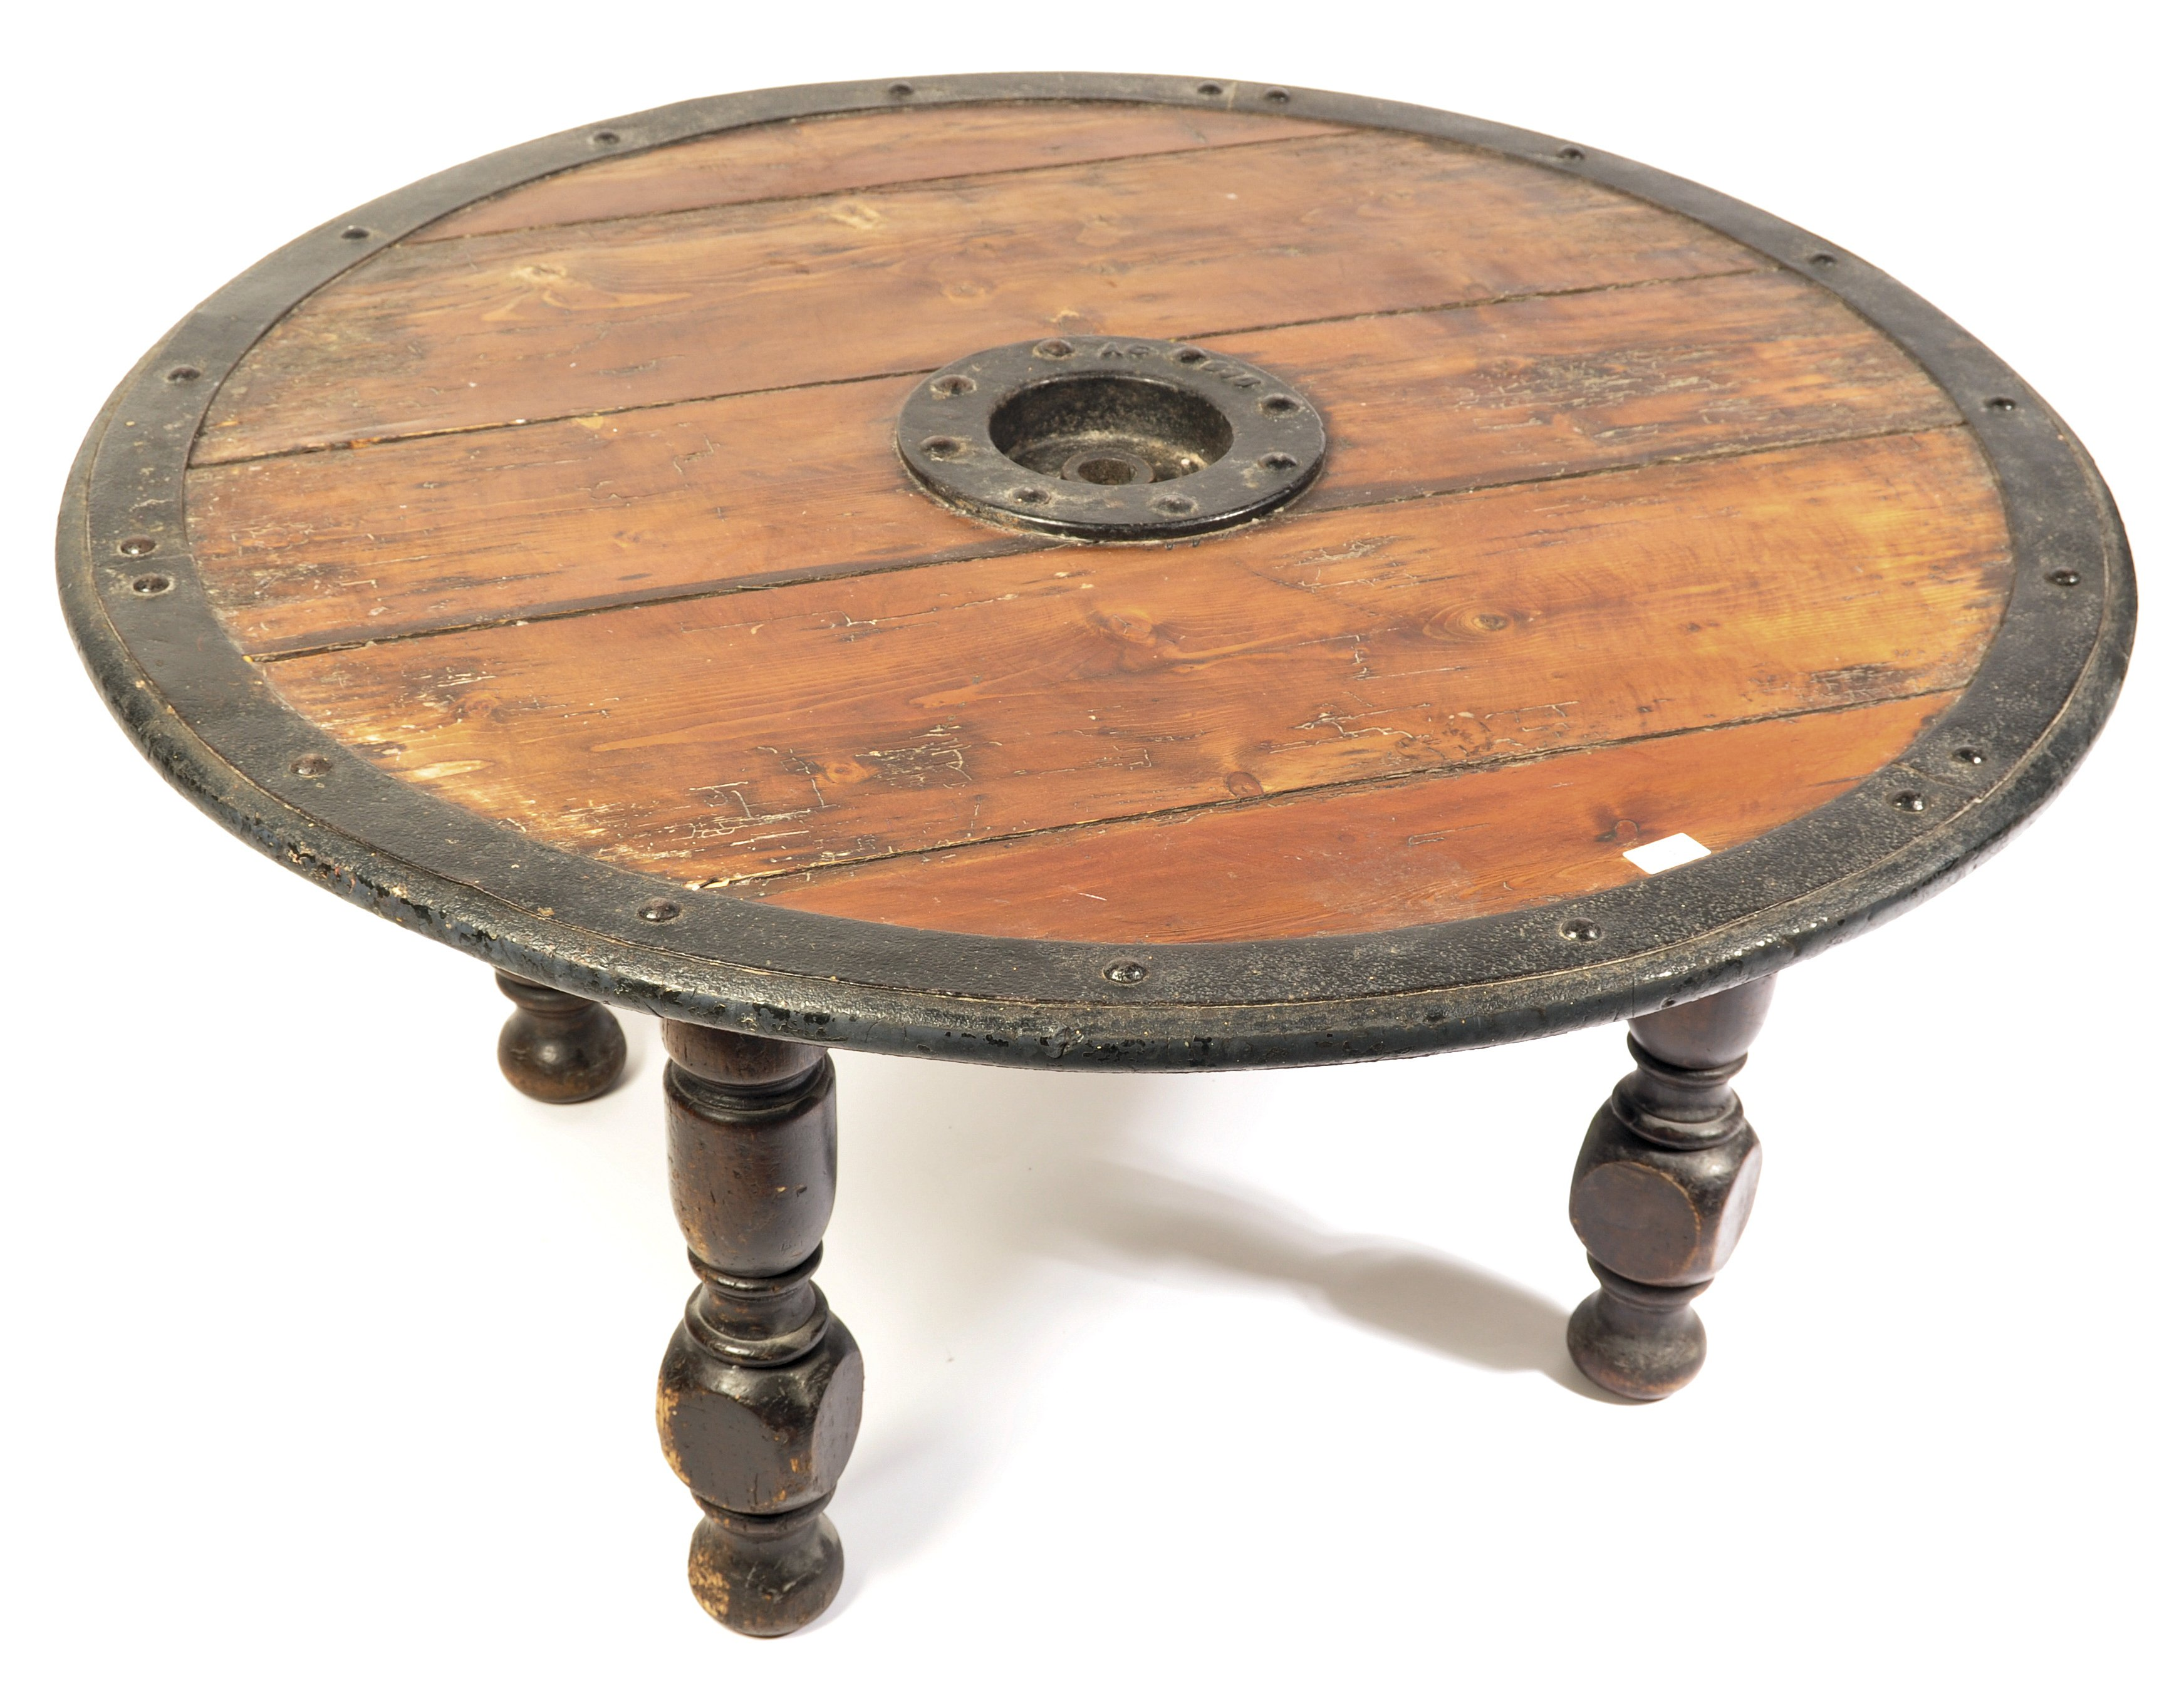 Lot 34 - LATE 19TH / EARLY 20TH CENTURY ANTIQUE SHIELD WHEEL COFFEE TABLE